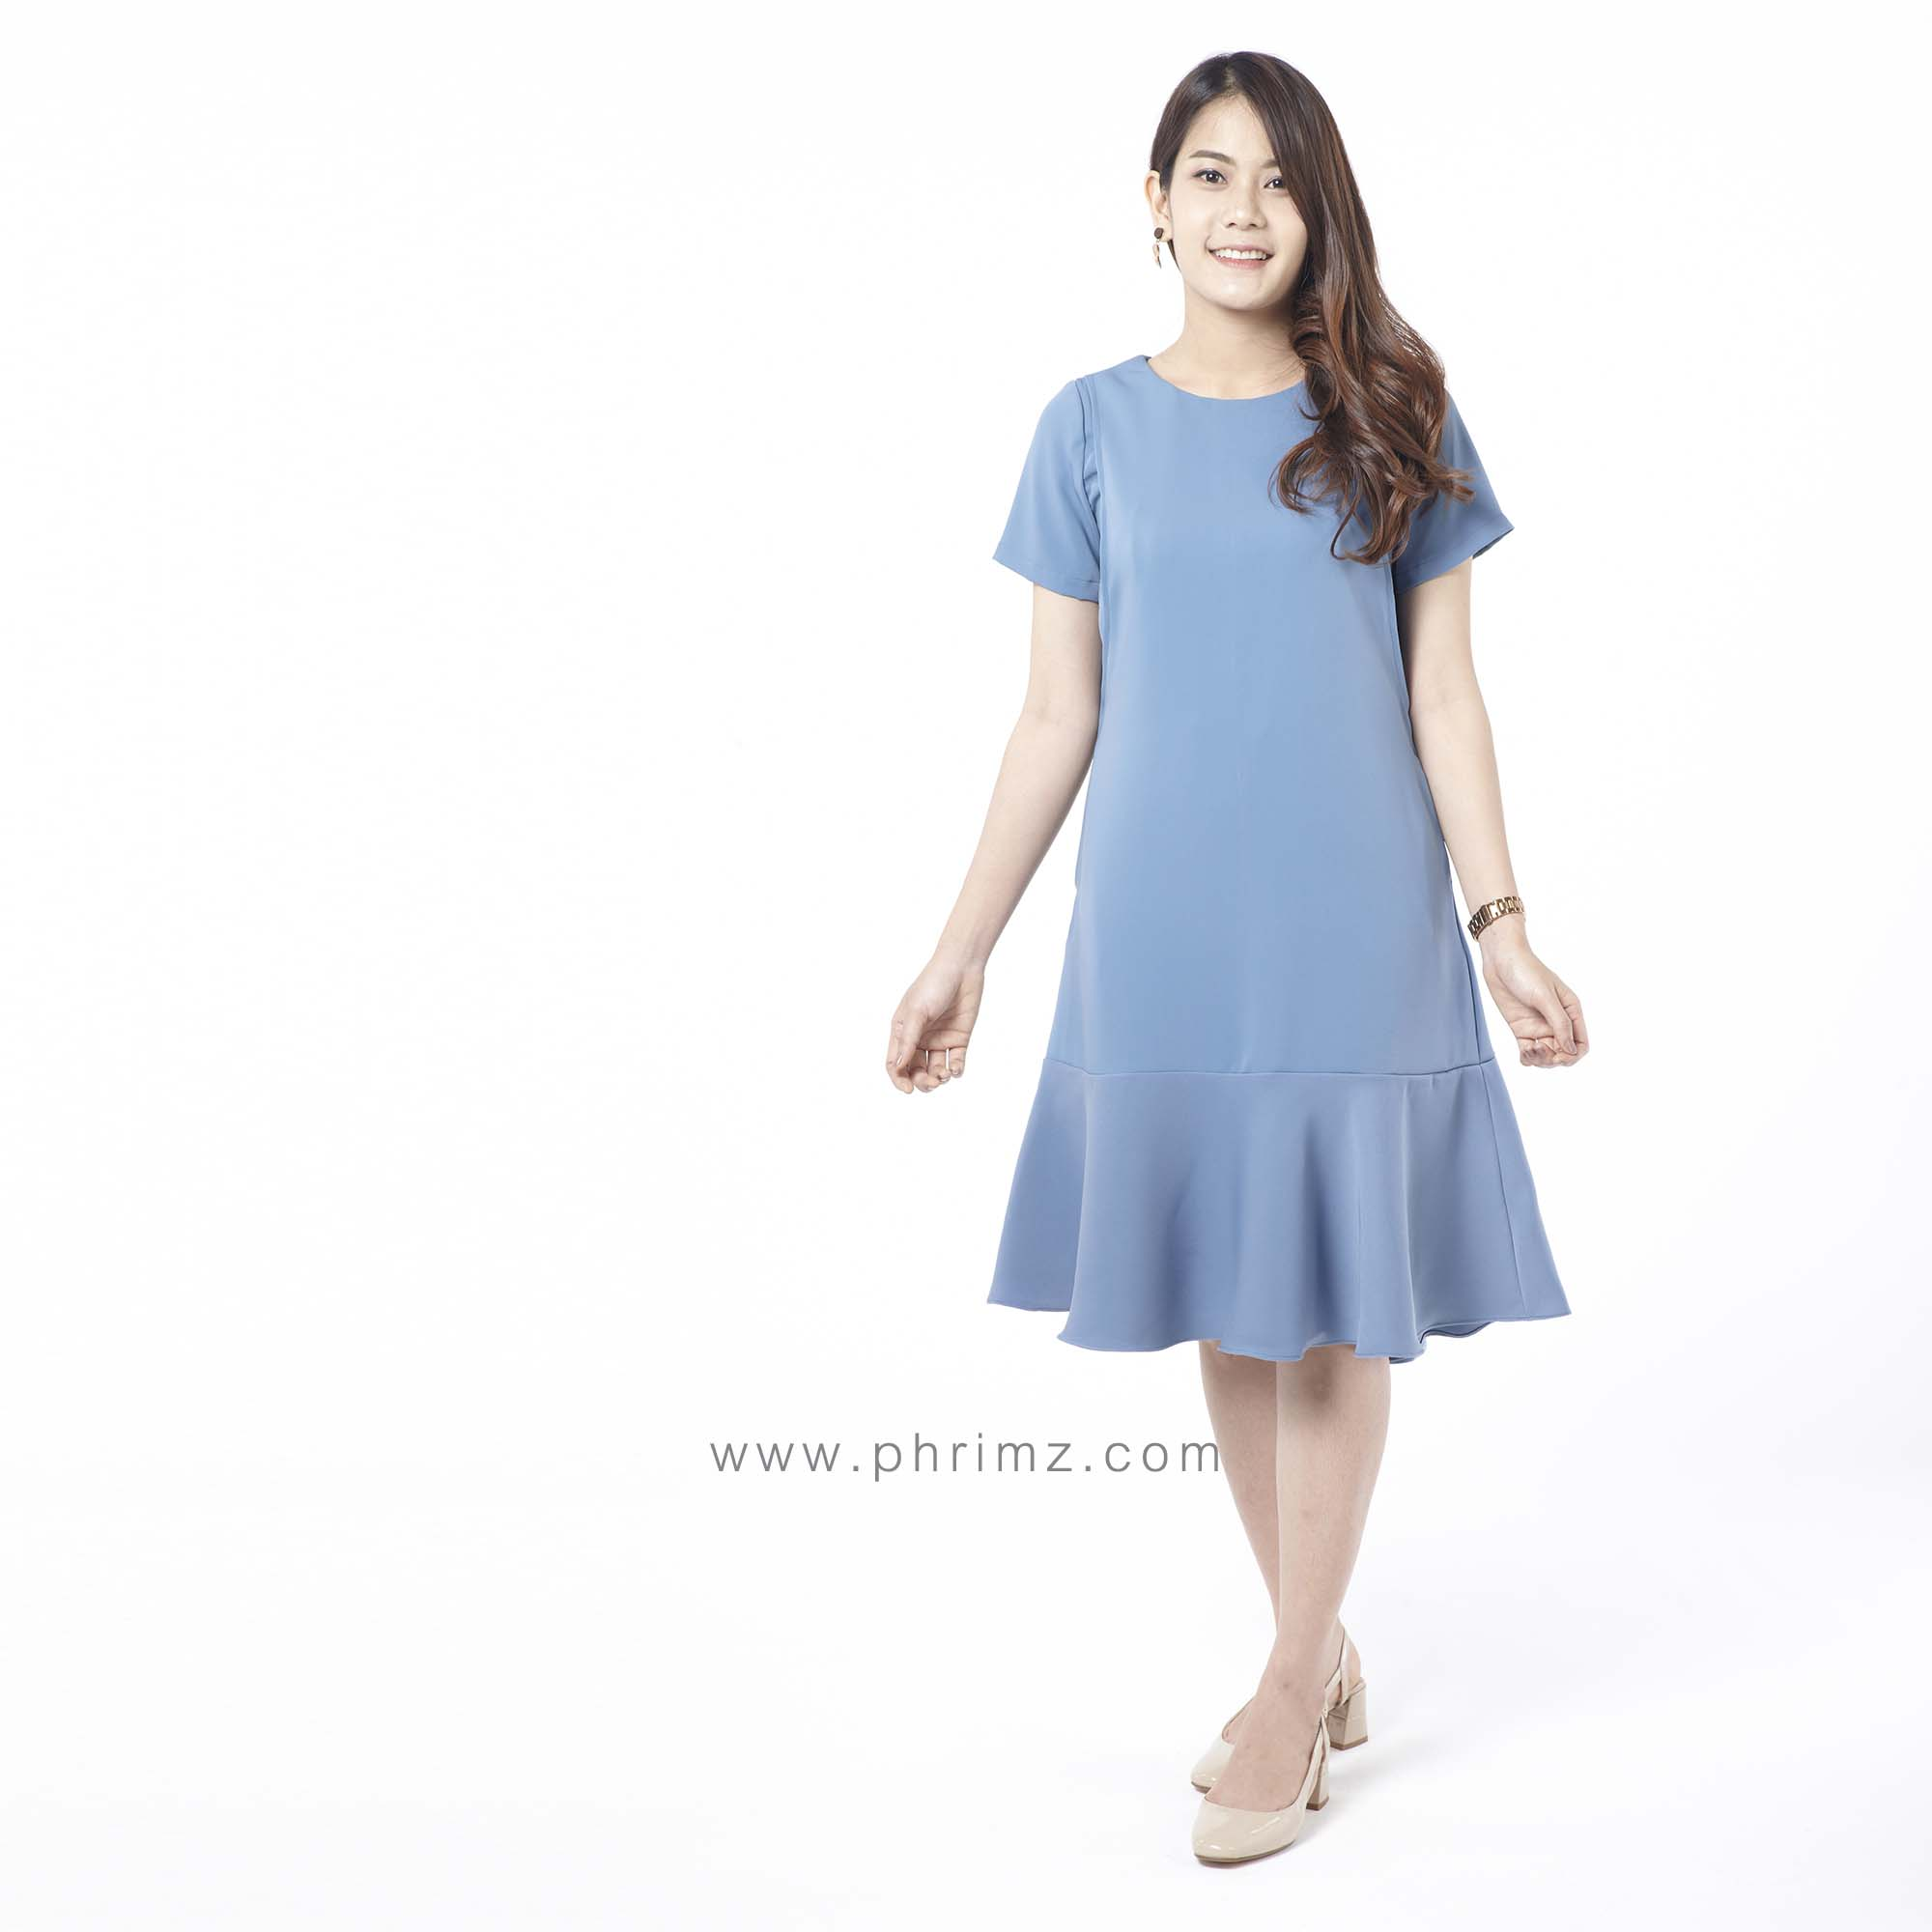 ชุดให้นม Phrimz : Mermaid Breastfeeding Dress - ฺBluberry